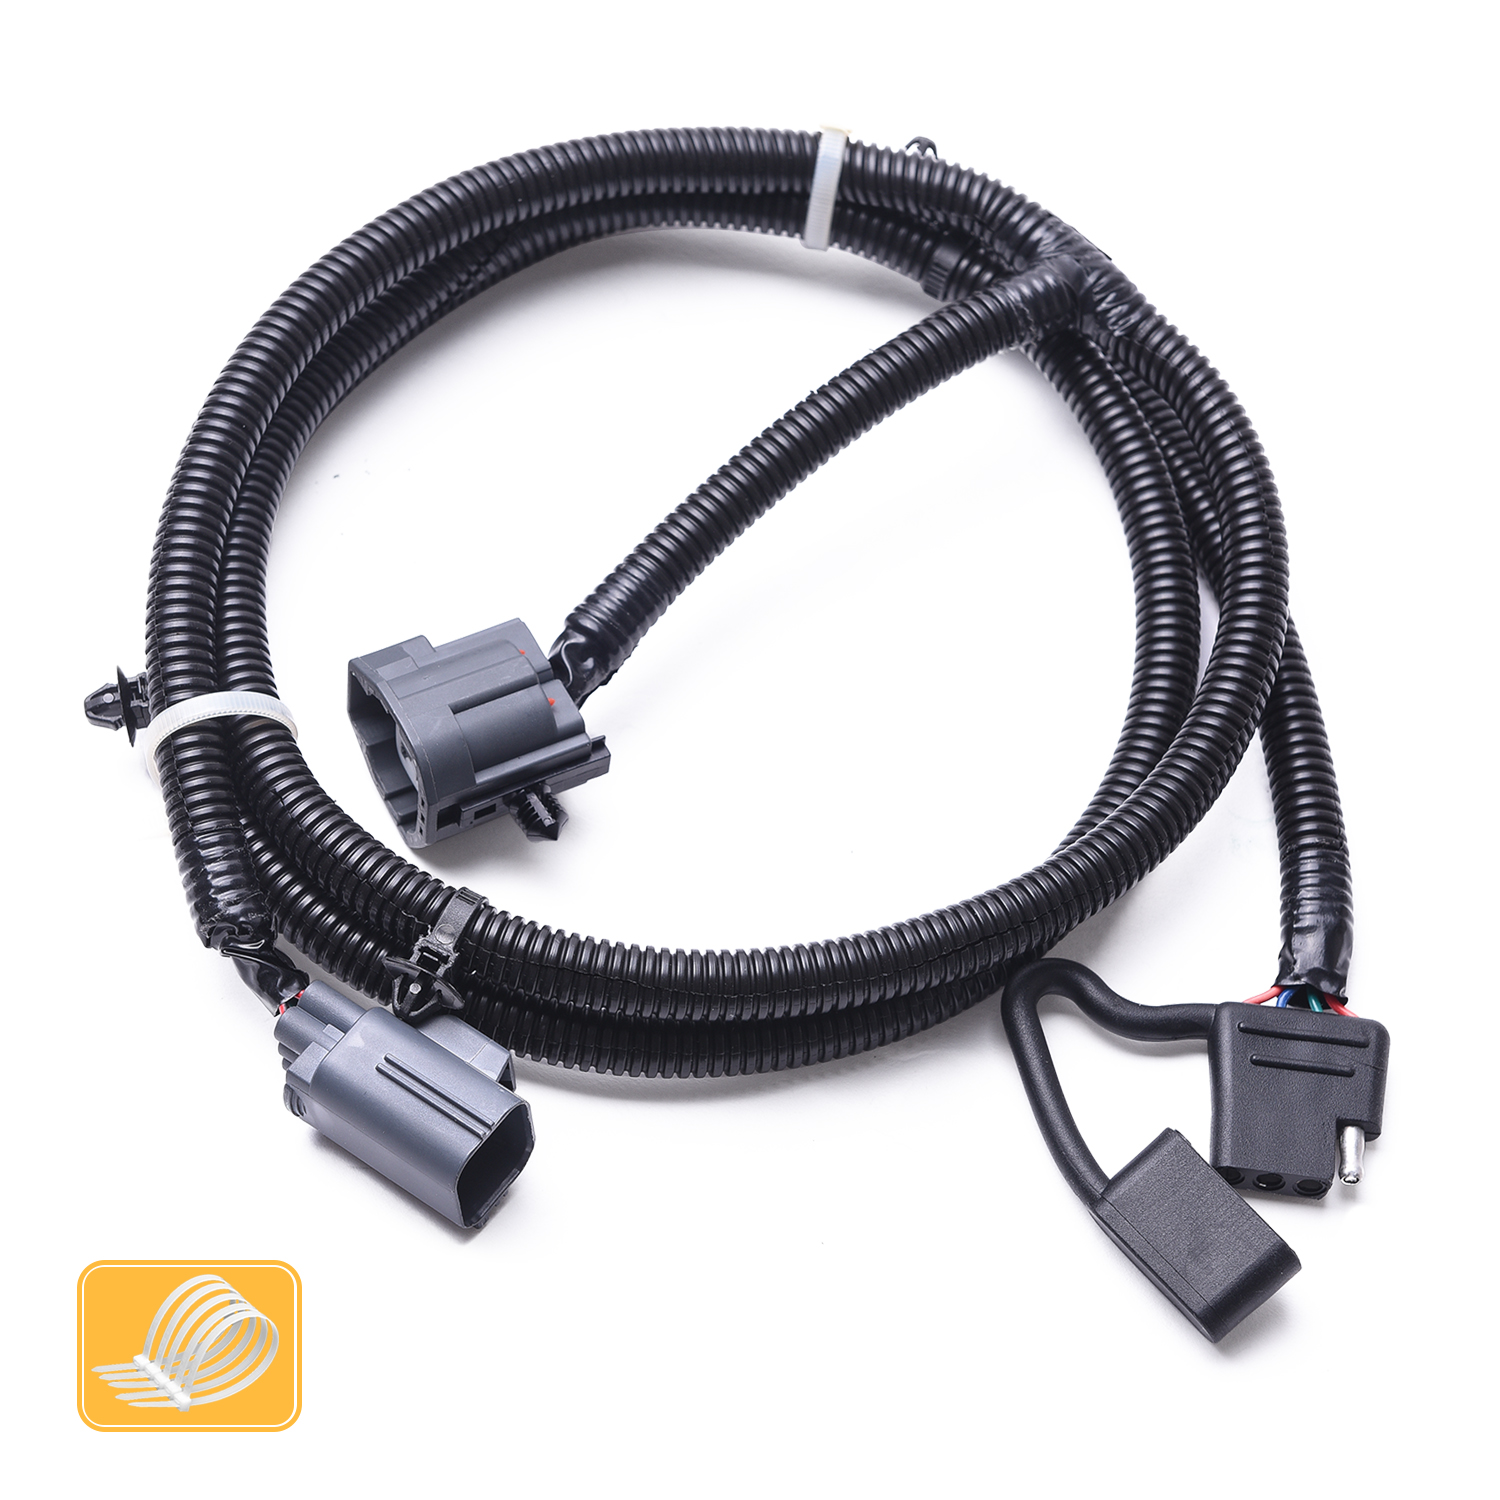 hight resolution of details about 4 way trailer tow hitch wiring harness for 2007 2016 jeep wrangler jk 2 4 door